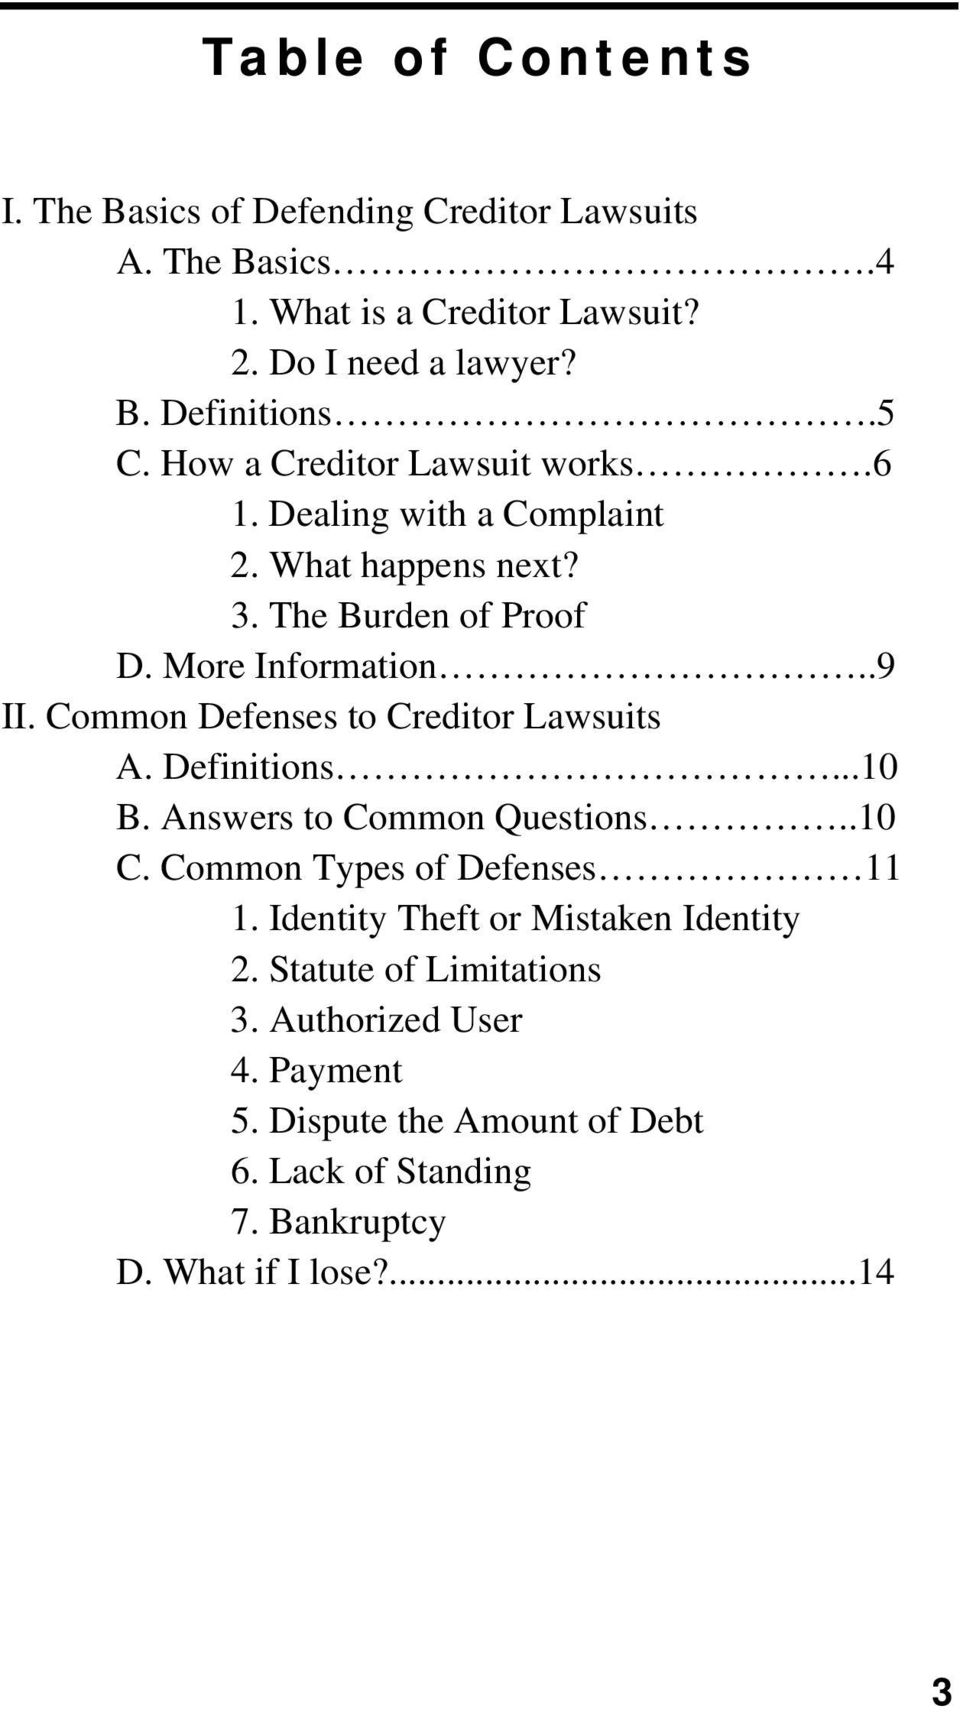 Common Defenses to Creditor Lawsuits A. Definitions...10 B. Answers to Common Questions..10 C. Common Types of Defenses 11 1.